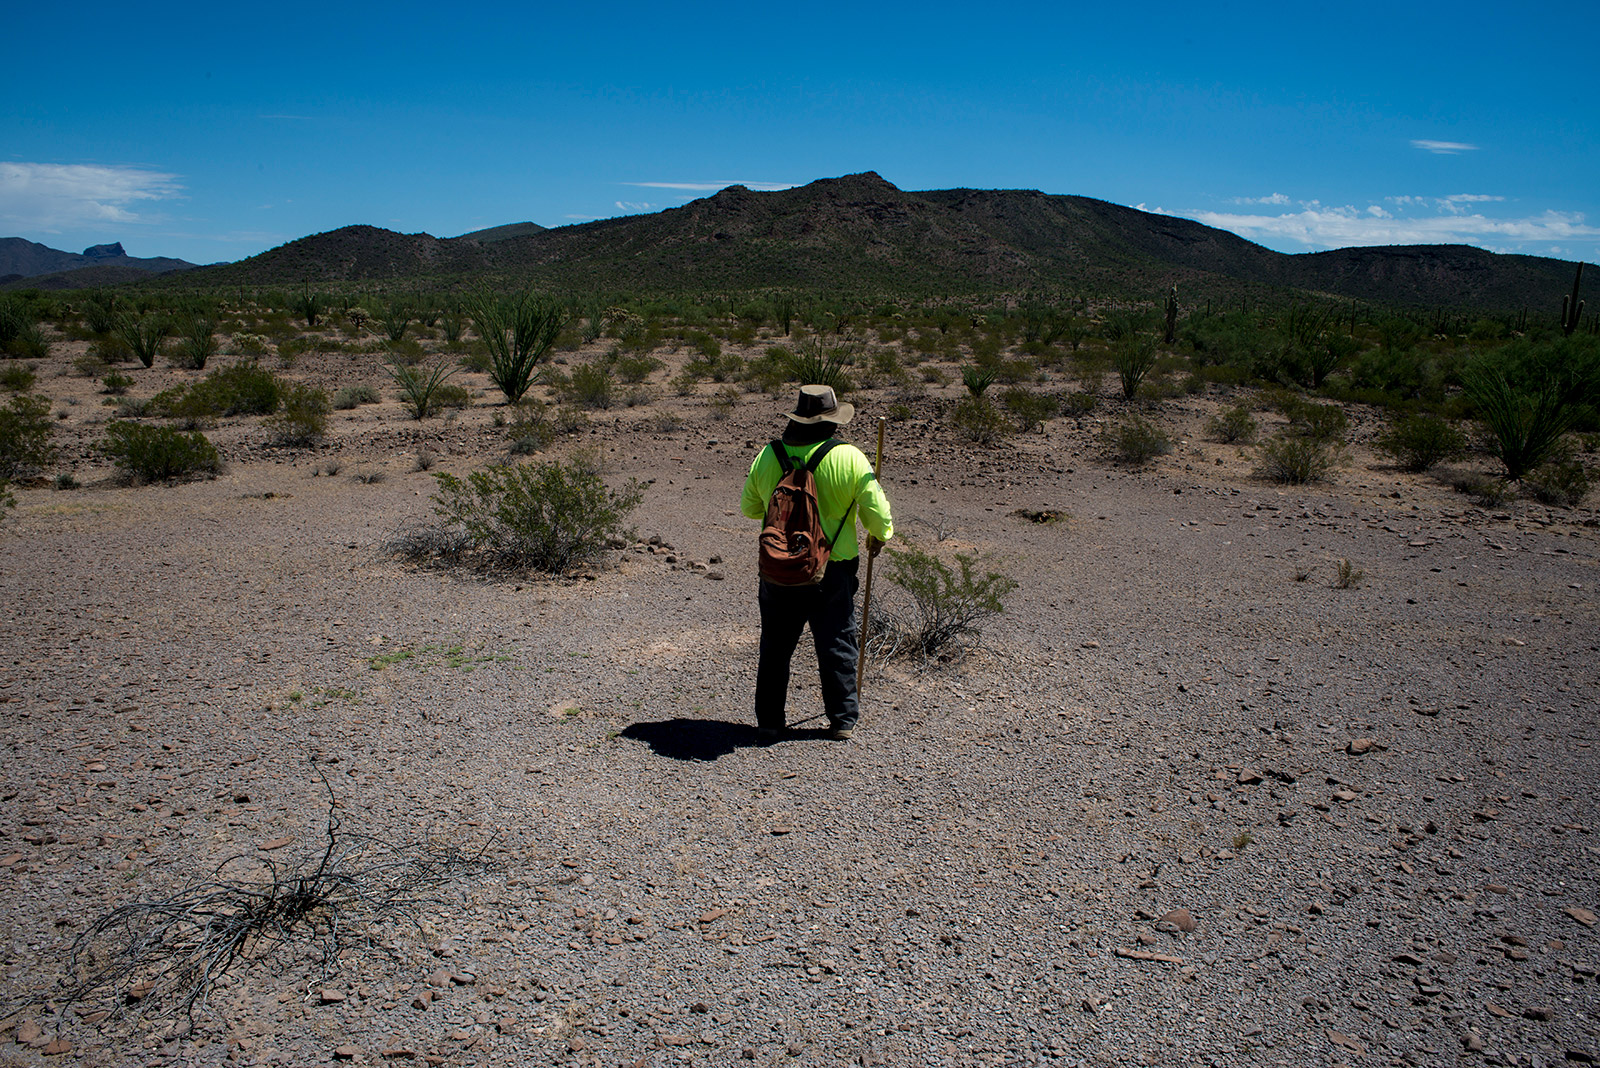 Ely Ortiz, the founder and leader of Aguilas Del Desierto, scans the desert near the U.S.-Mexico border as nearly two dozen volunteers help him search for missing migrants. Ortiz's brother died of dehydration nearby in 2009 while attempting to enter the U.S. illegally, prompting Ortiz to form the volunteer group. <em>(Brandon Quester/inewsource)</em>